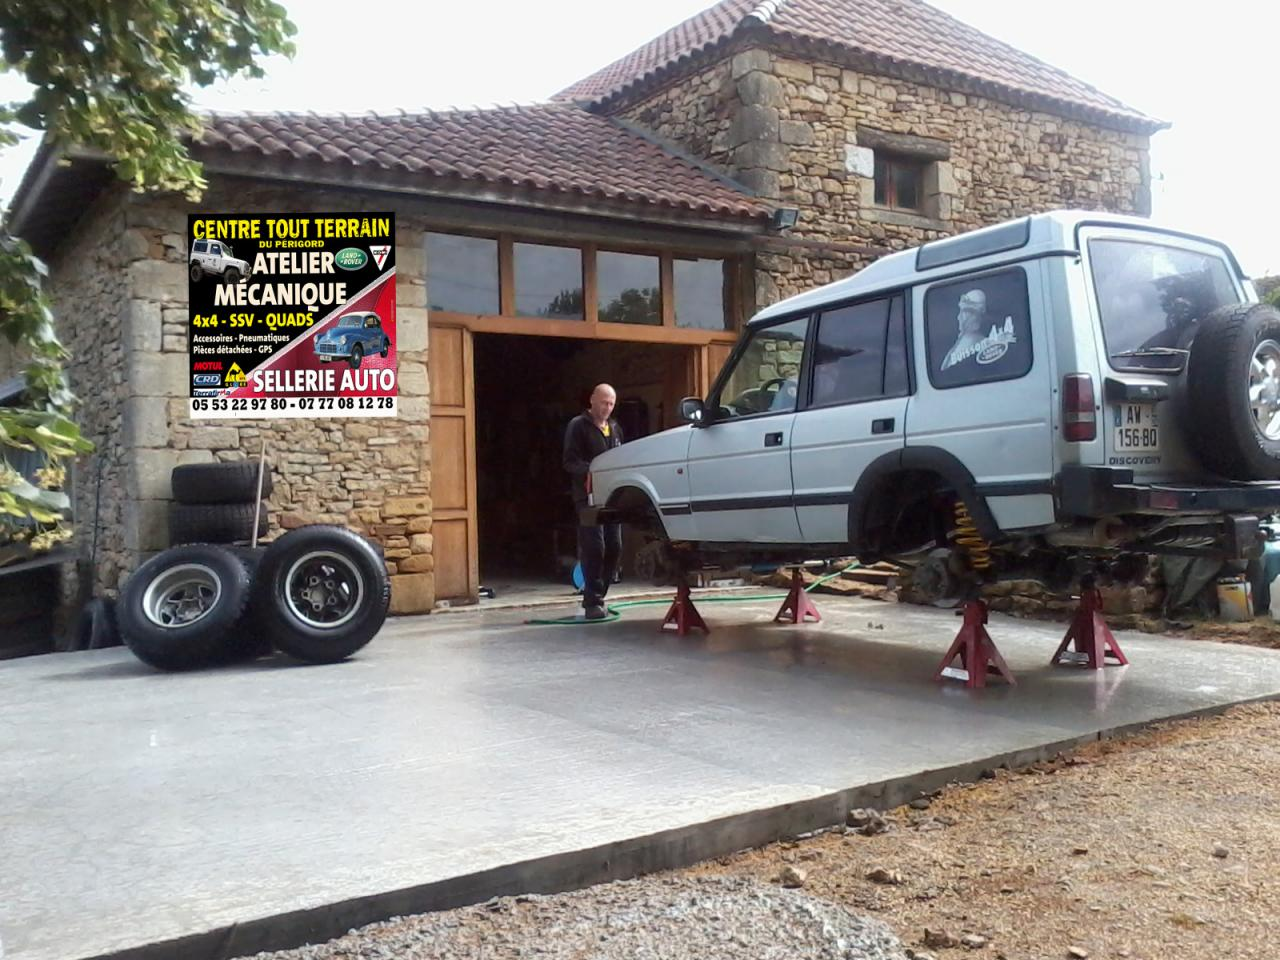 Atelier mecanique land rover for Ouvrir son garage mecanique